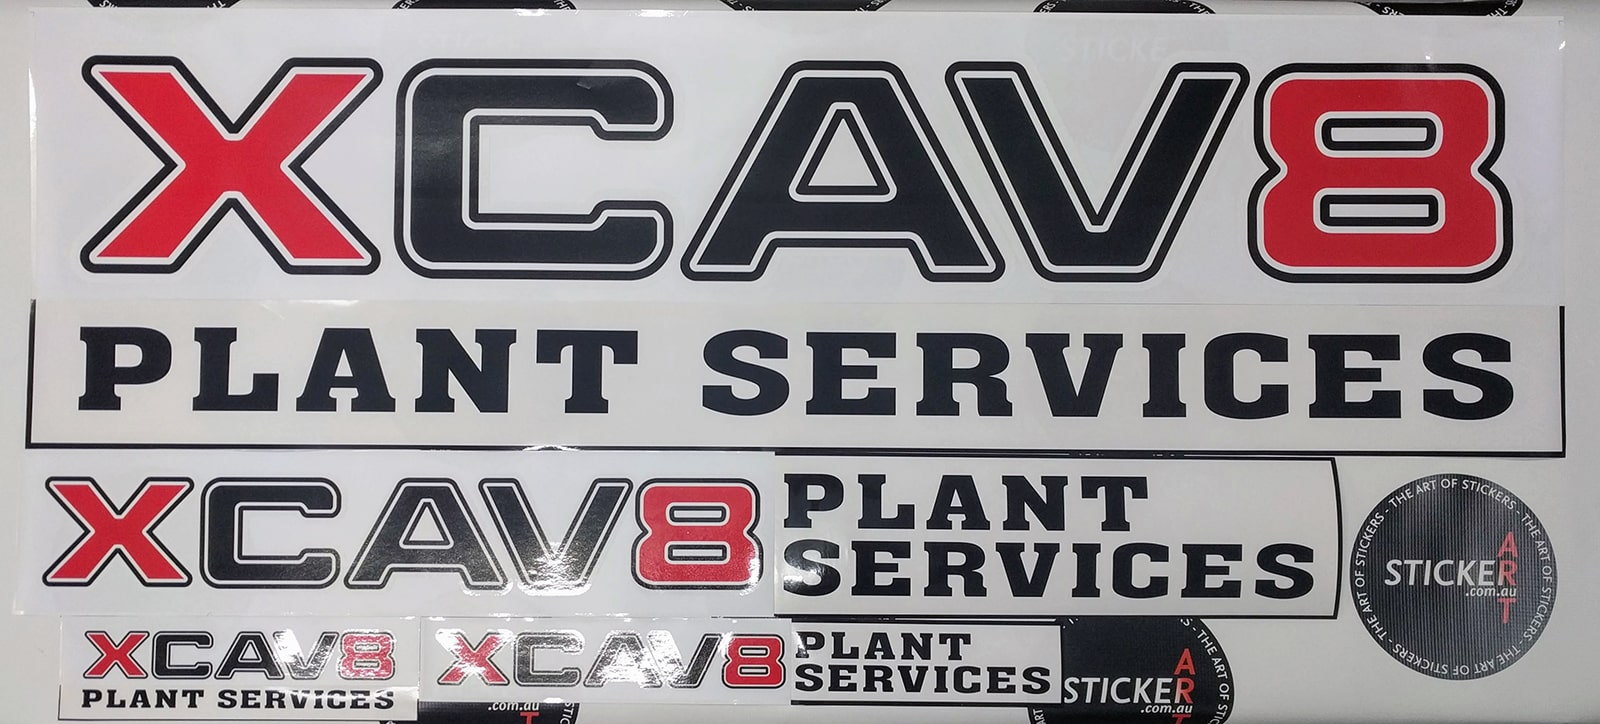 Custom made stickers and decals for XCAV8 Plant Services, Brisbane - Queensland